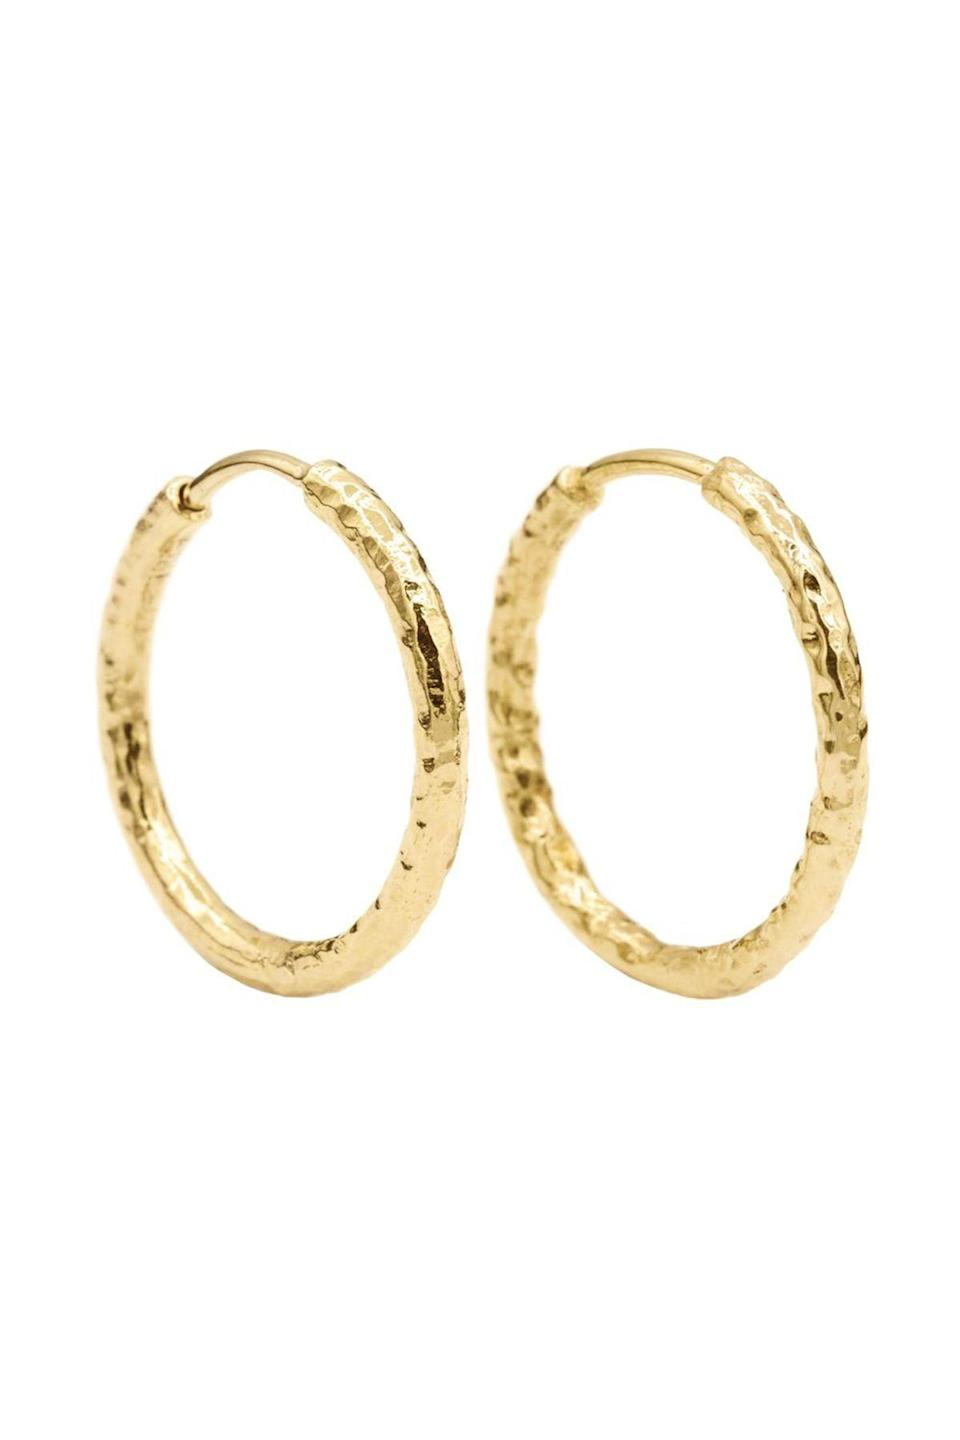 """<p><strong>Octavia Elizabeth</strong></p><p>octaviaelizabeth.com</p><p><strong>$675.00</strong></p><p><a href=""""https://www.octaviaelizabeth.com/collections/earrings/products/gabby-hoop"""" rel=""""nofollow noopener"""" target=""""_blank"""" data-ylk=""""slk:Shop Now"""" class=""""link rapid-noclick-resp"""">Shop Now</a></p><p>Upgrade your everyday yellow gold hoops with Octavia Elizabeth's beautiful hammered gold earrings. Available in multiple sizes plus with and without various gems will have you wearing them everyday.</p>"""